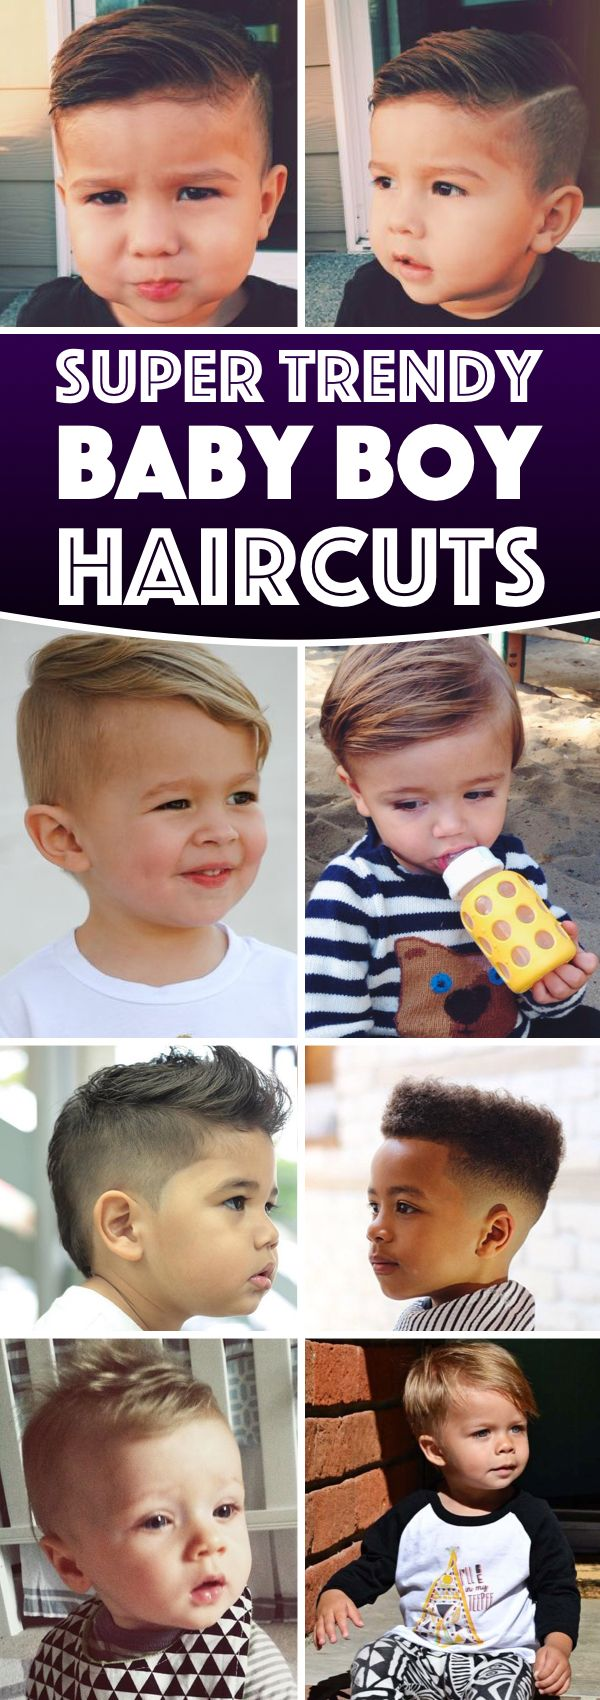 Ultra sun boy haircuts  best all things maddie images on pinterest  little boys babies